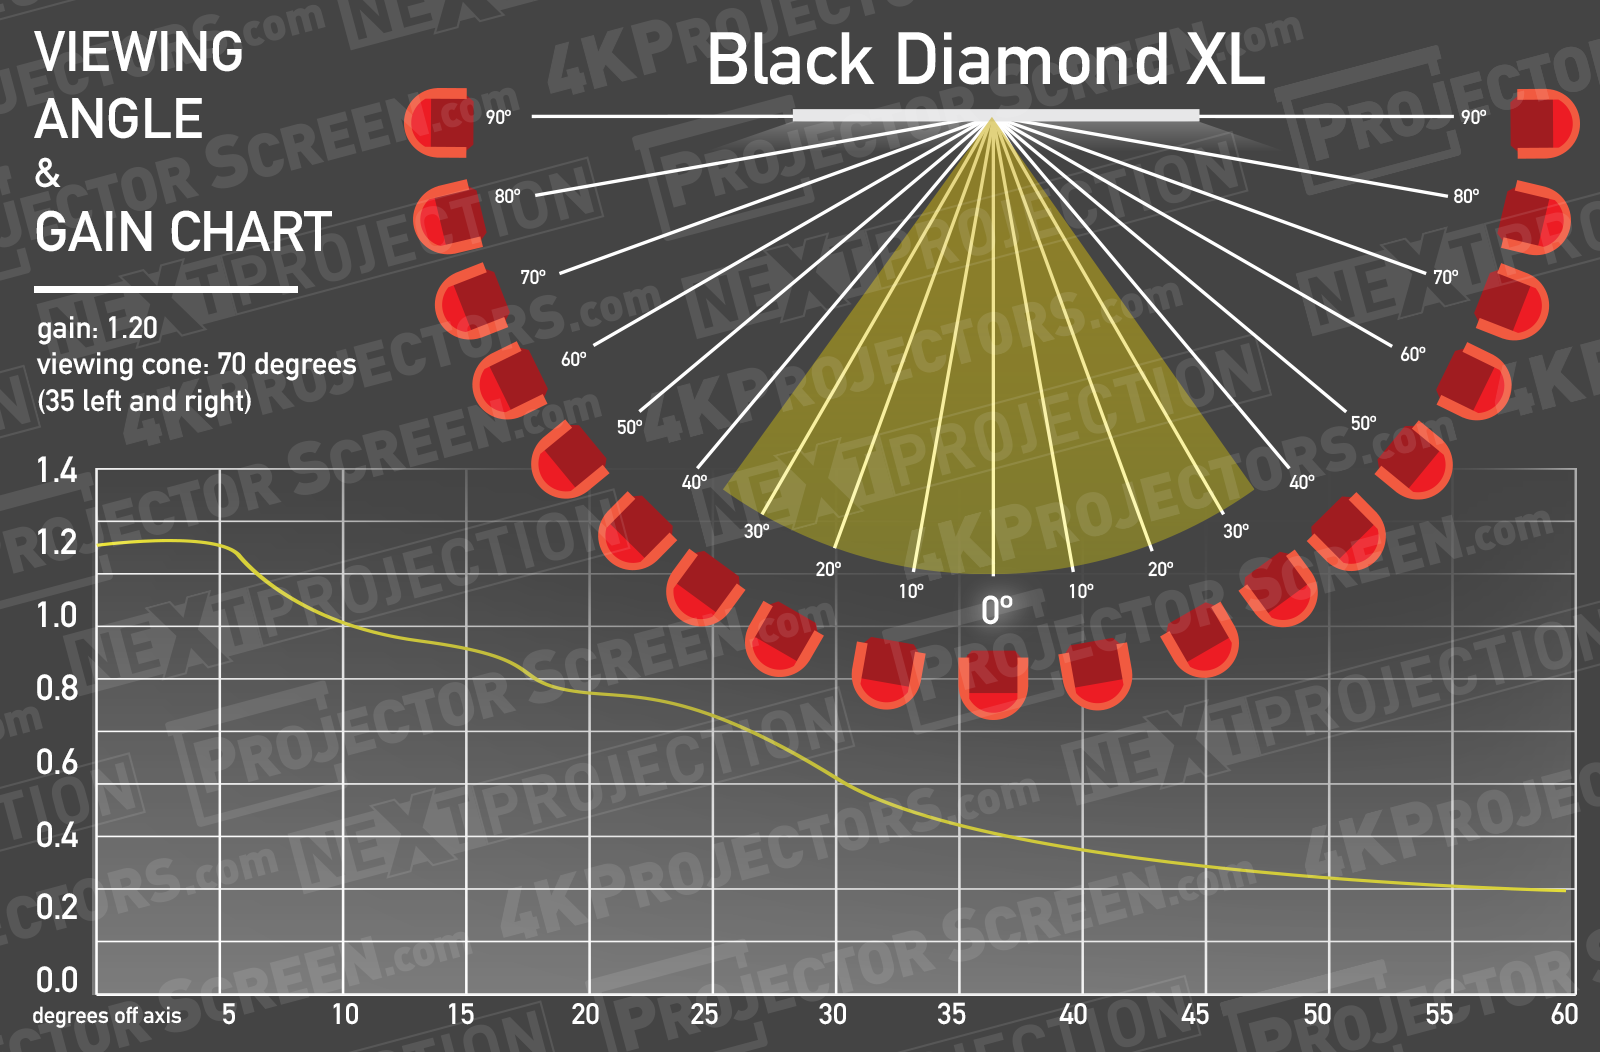 Black Diamond XL